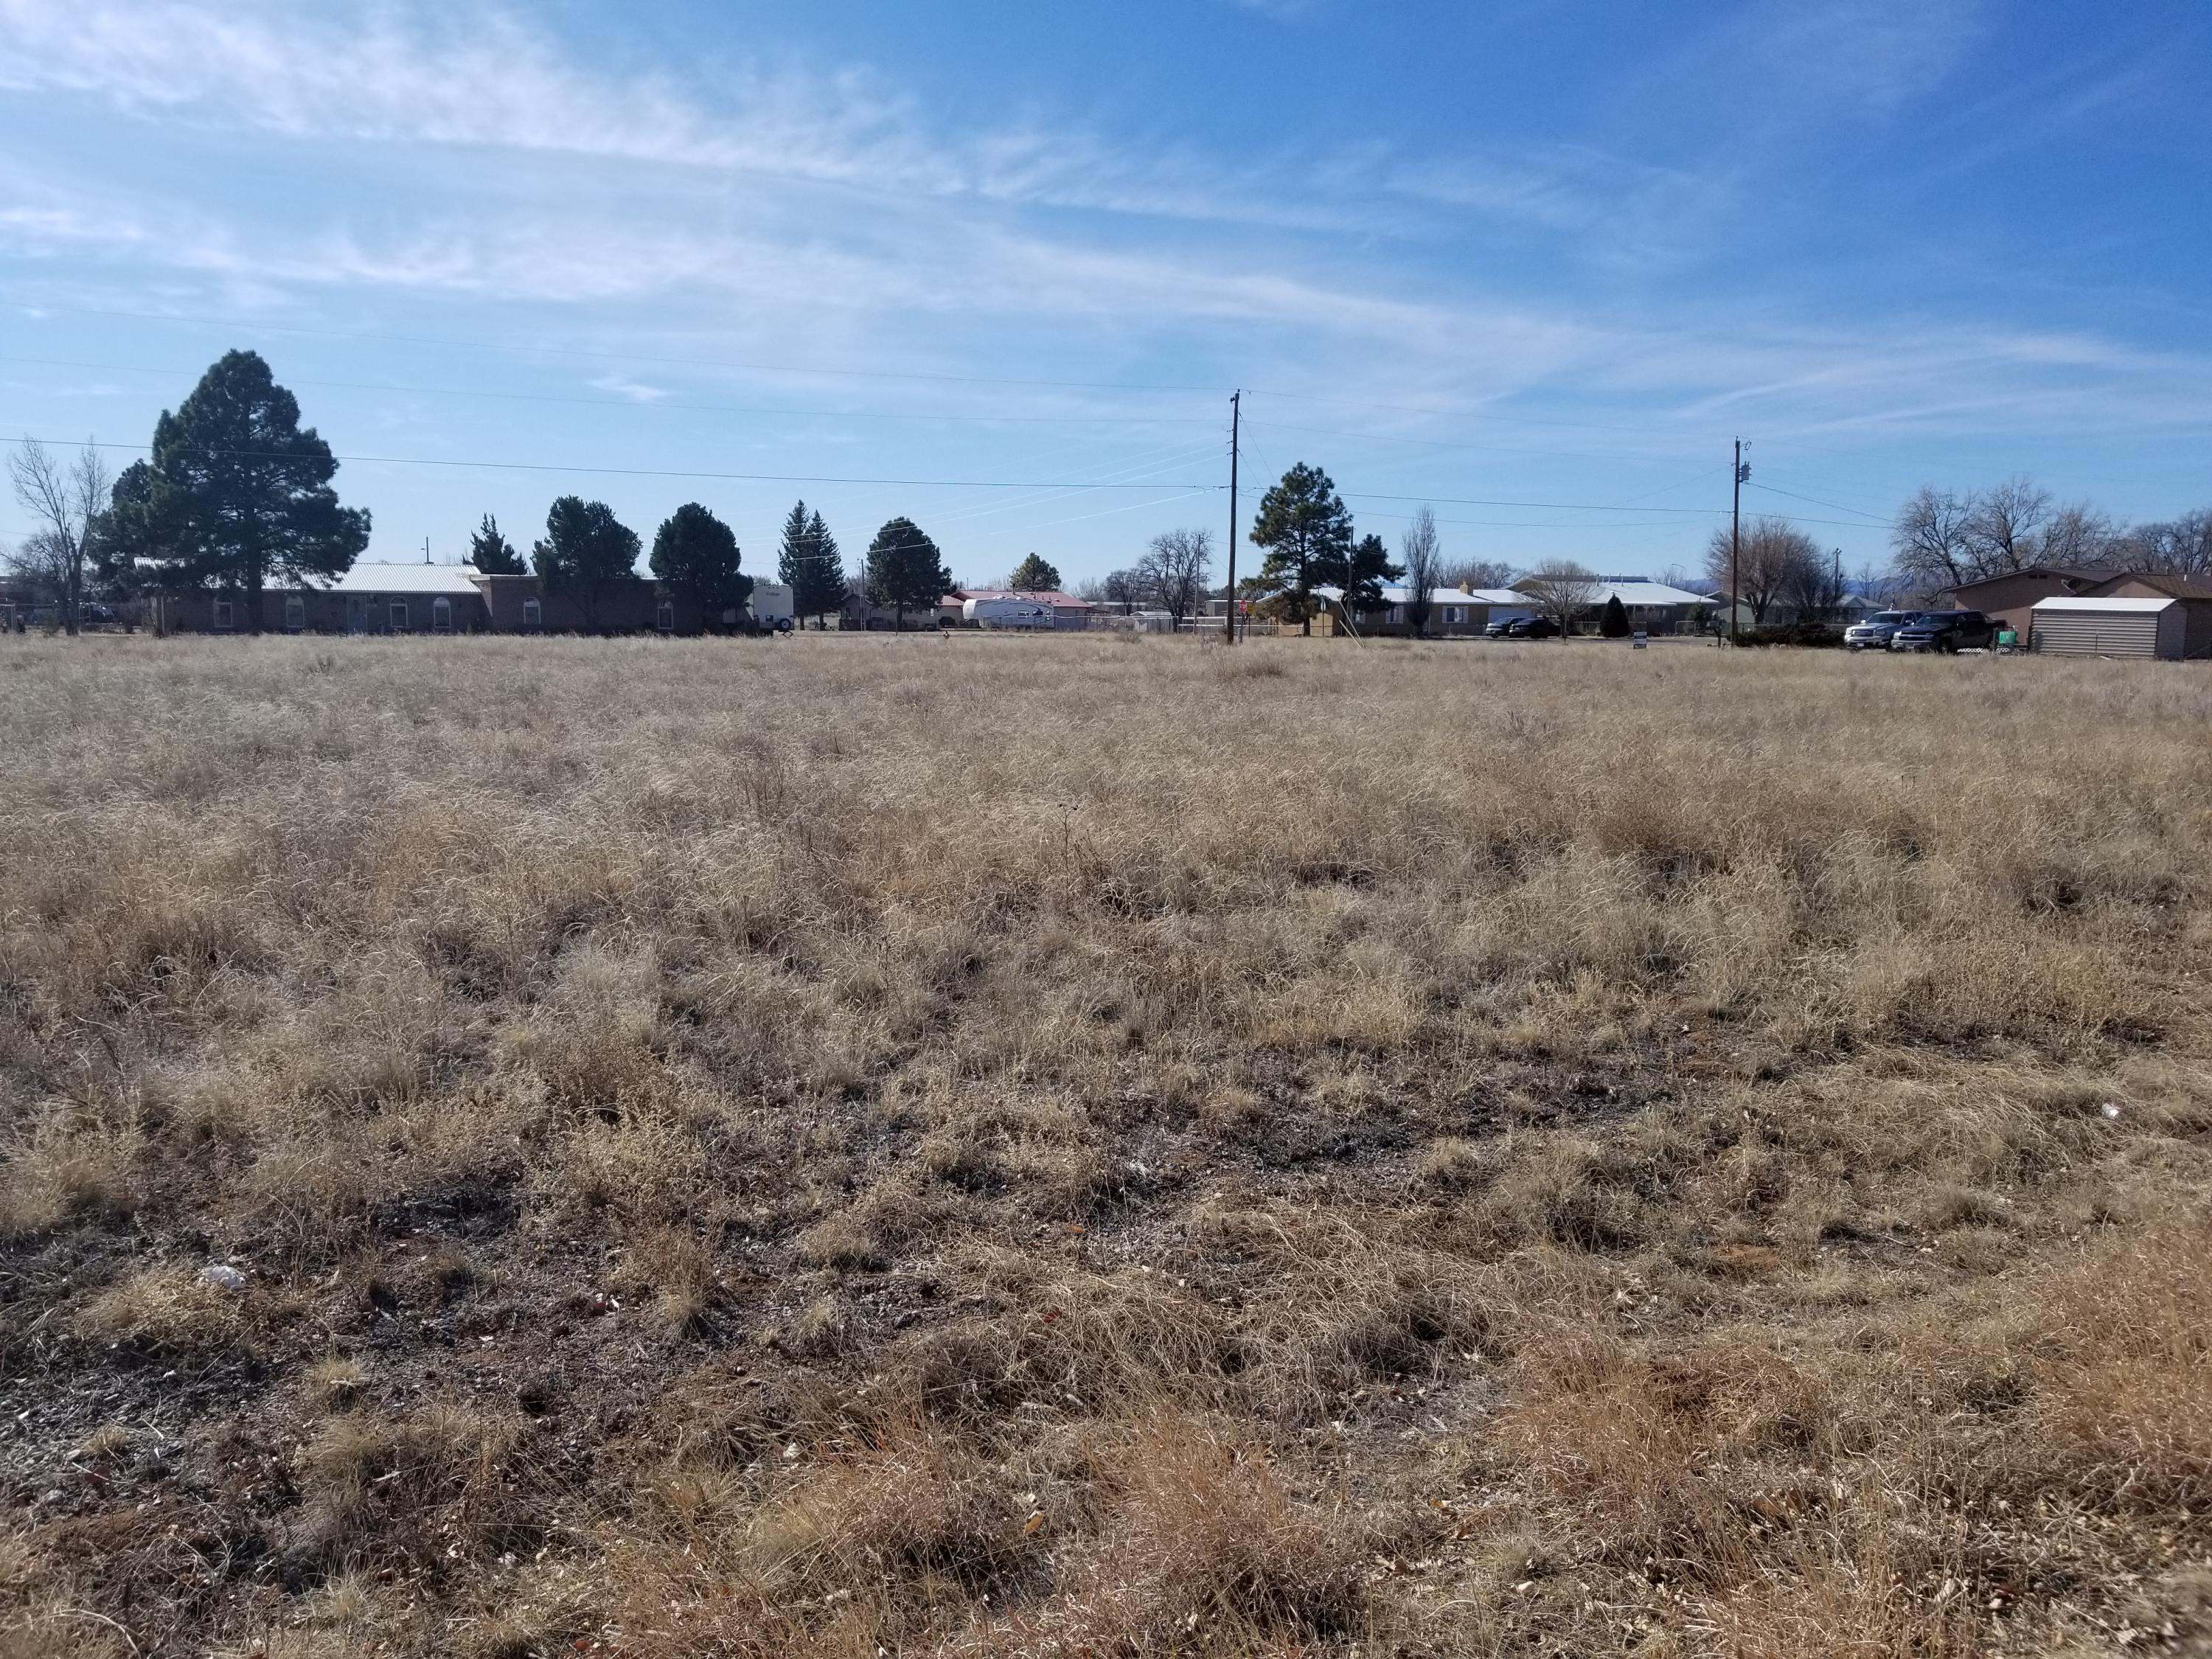 102 Link Avenue, Moriarty, NM 87035 - Moriarty, NM real estate listing